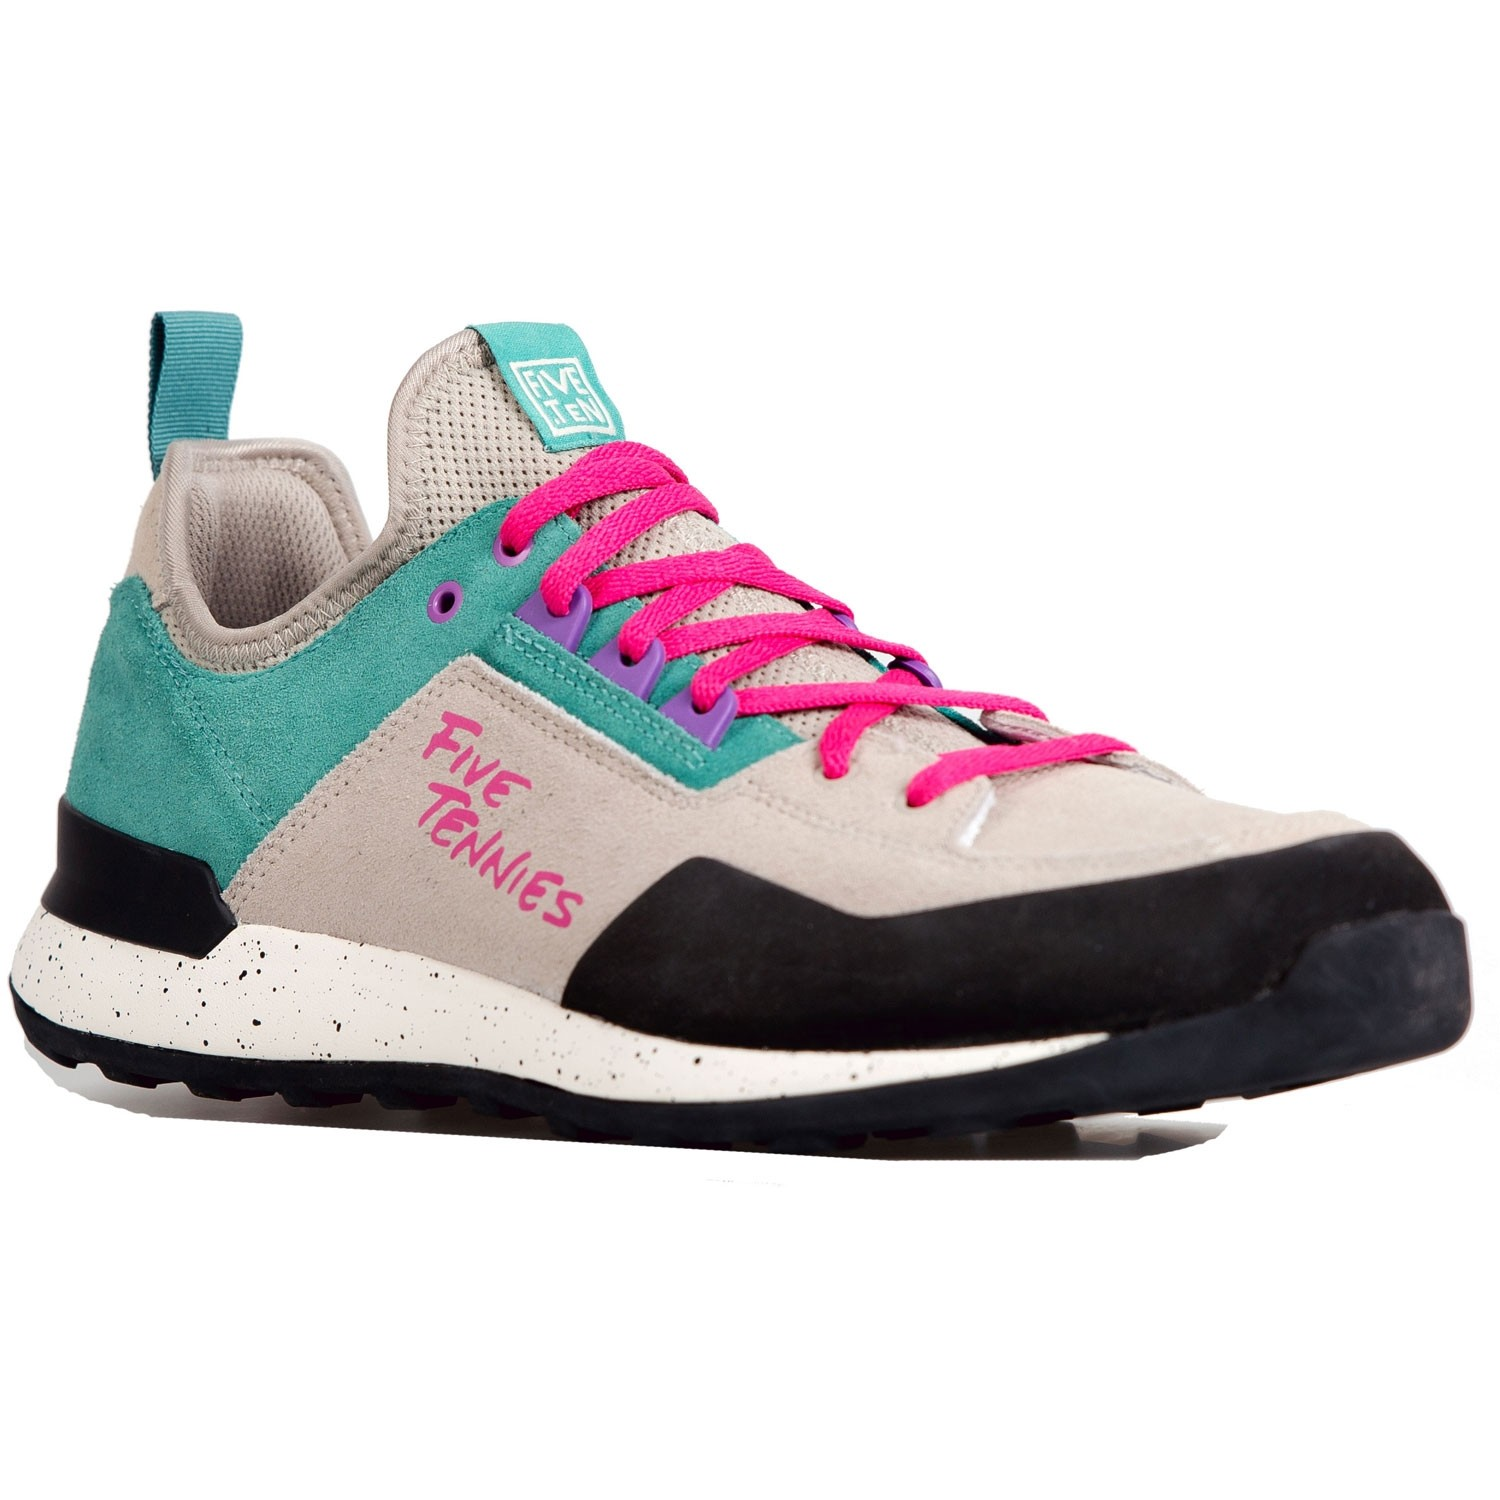 Five.Ten Five Tennie Men's Approach Shoes - Light Brown/True Green/Real Magenta